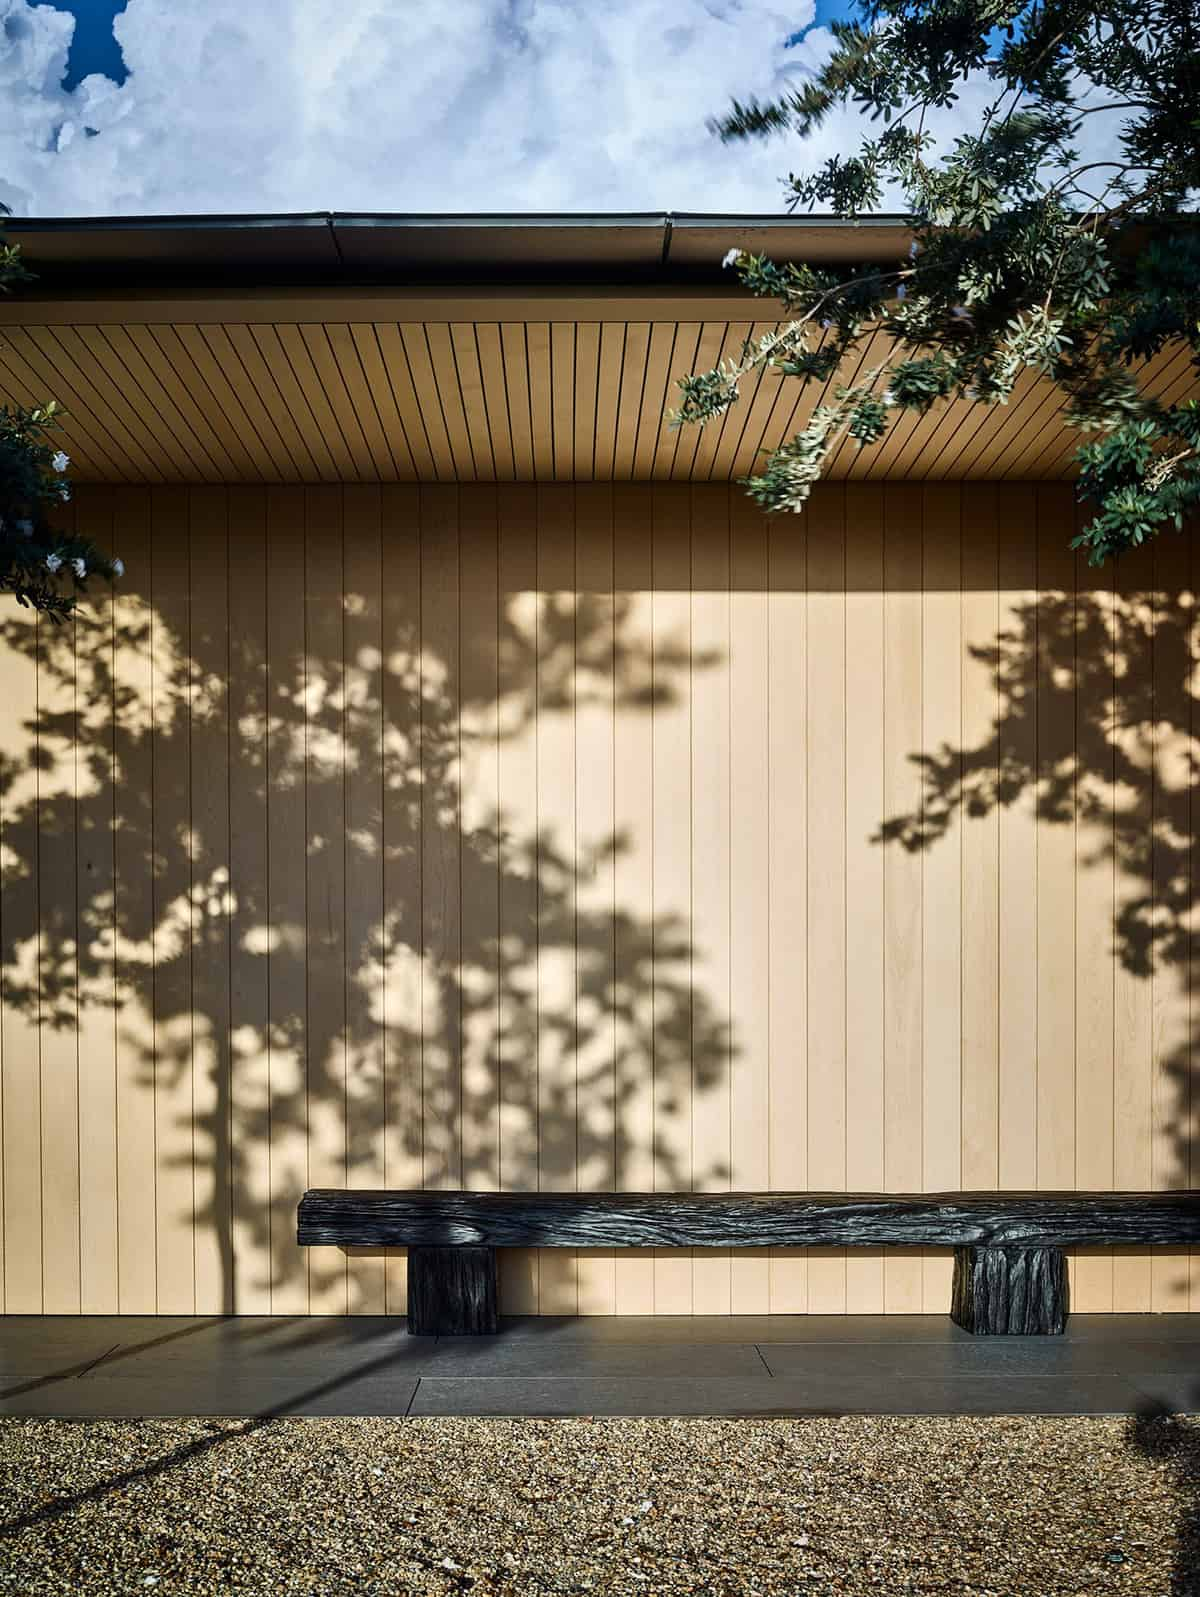 hawaii-holiday-home-exterior-with-a-bench